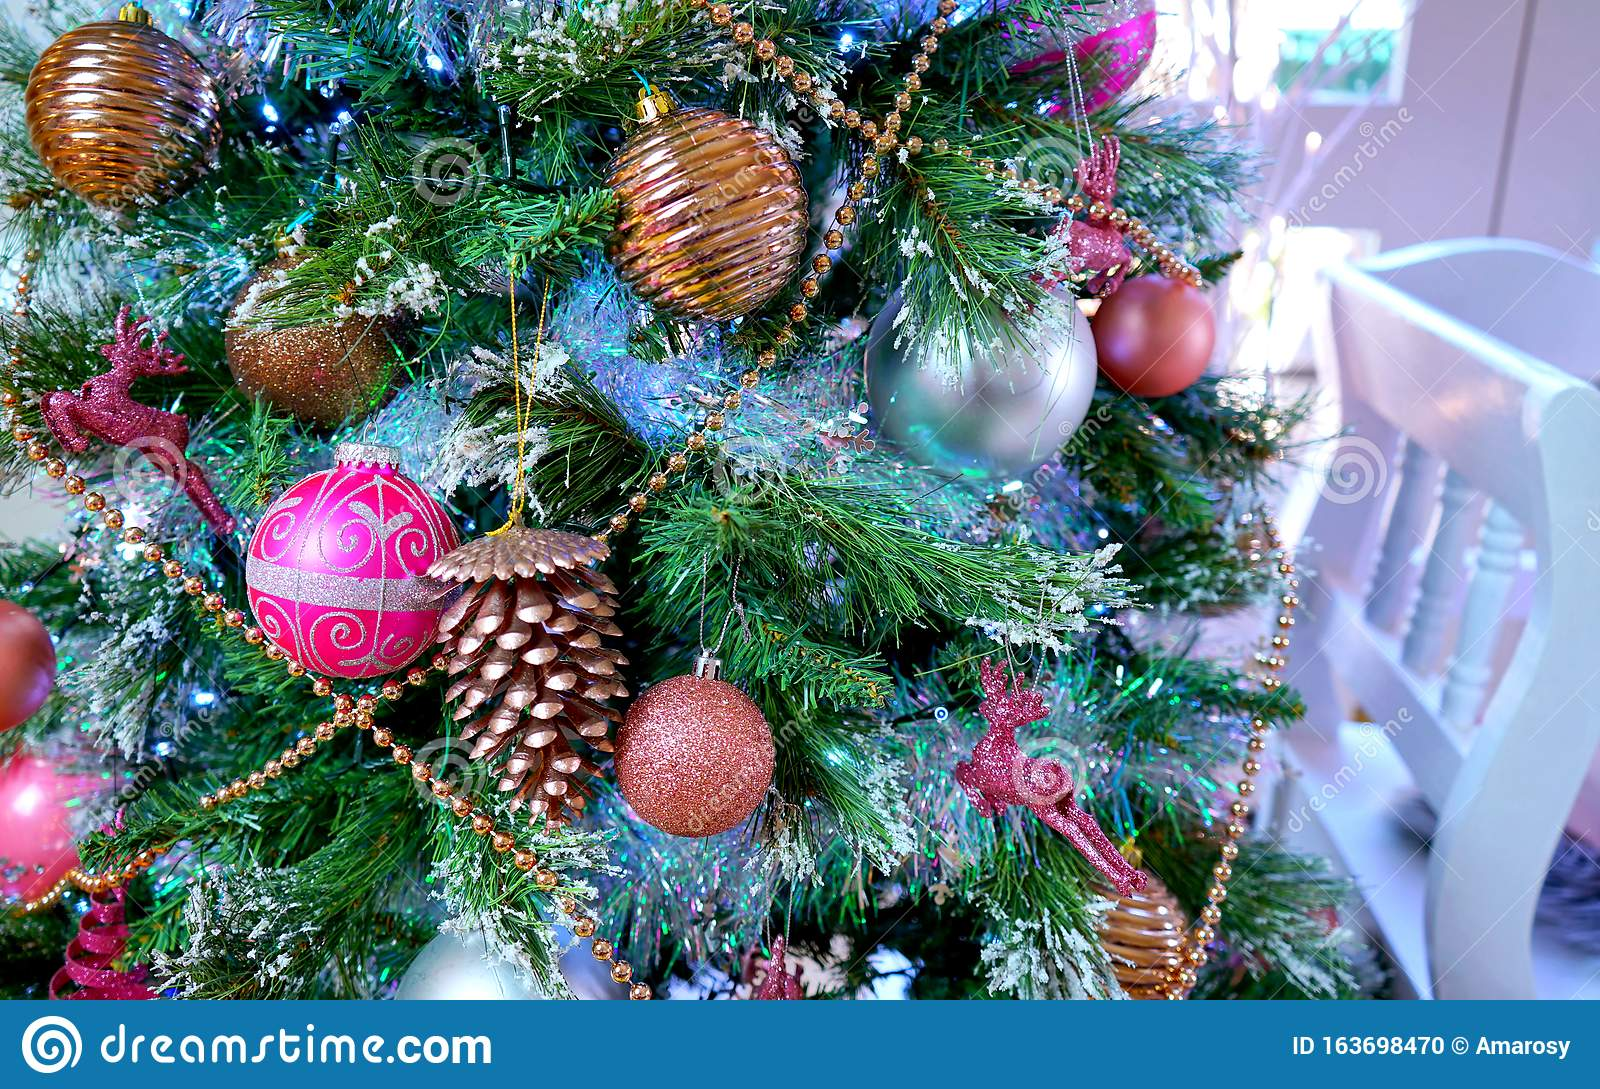 On Trend Pink And Rose Gold Trimmed Christmas Tree With Tray For Santa Stock Photo Image Of Family Card 163698470